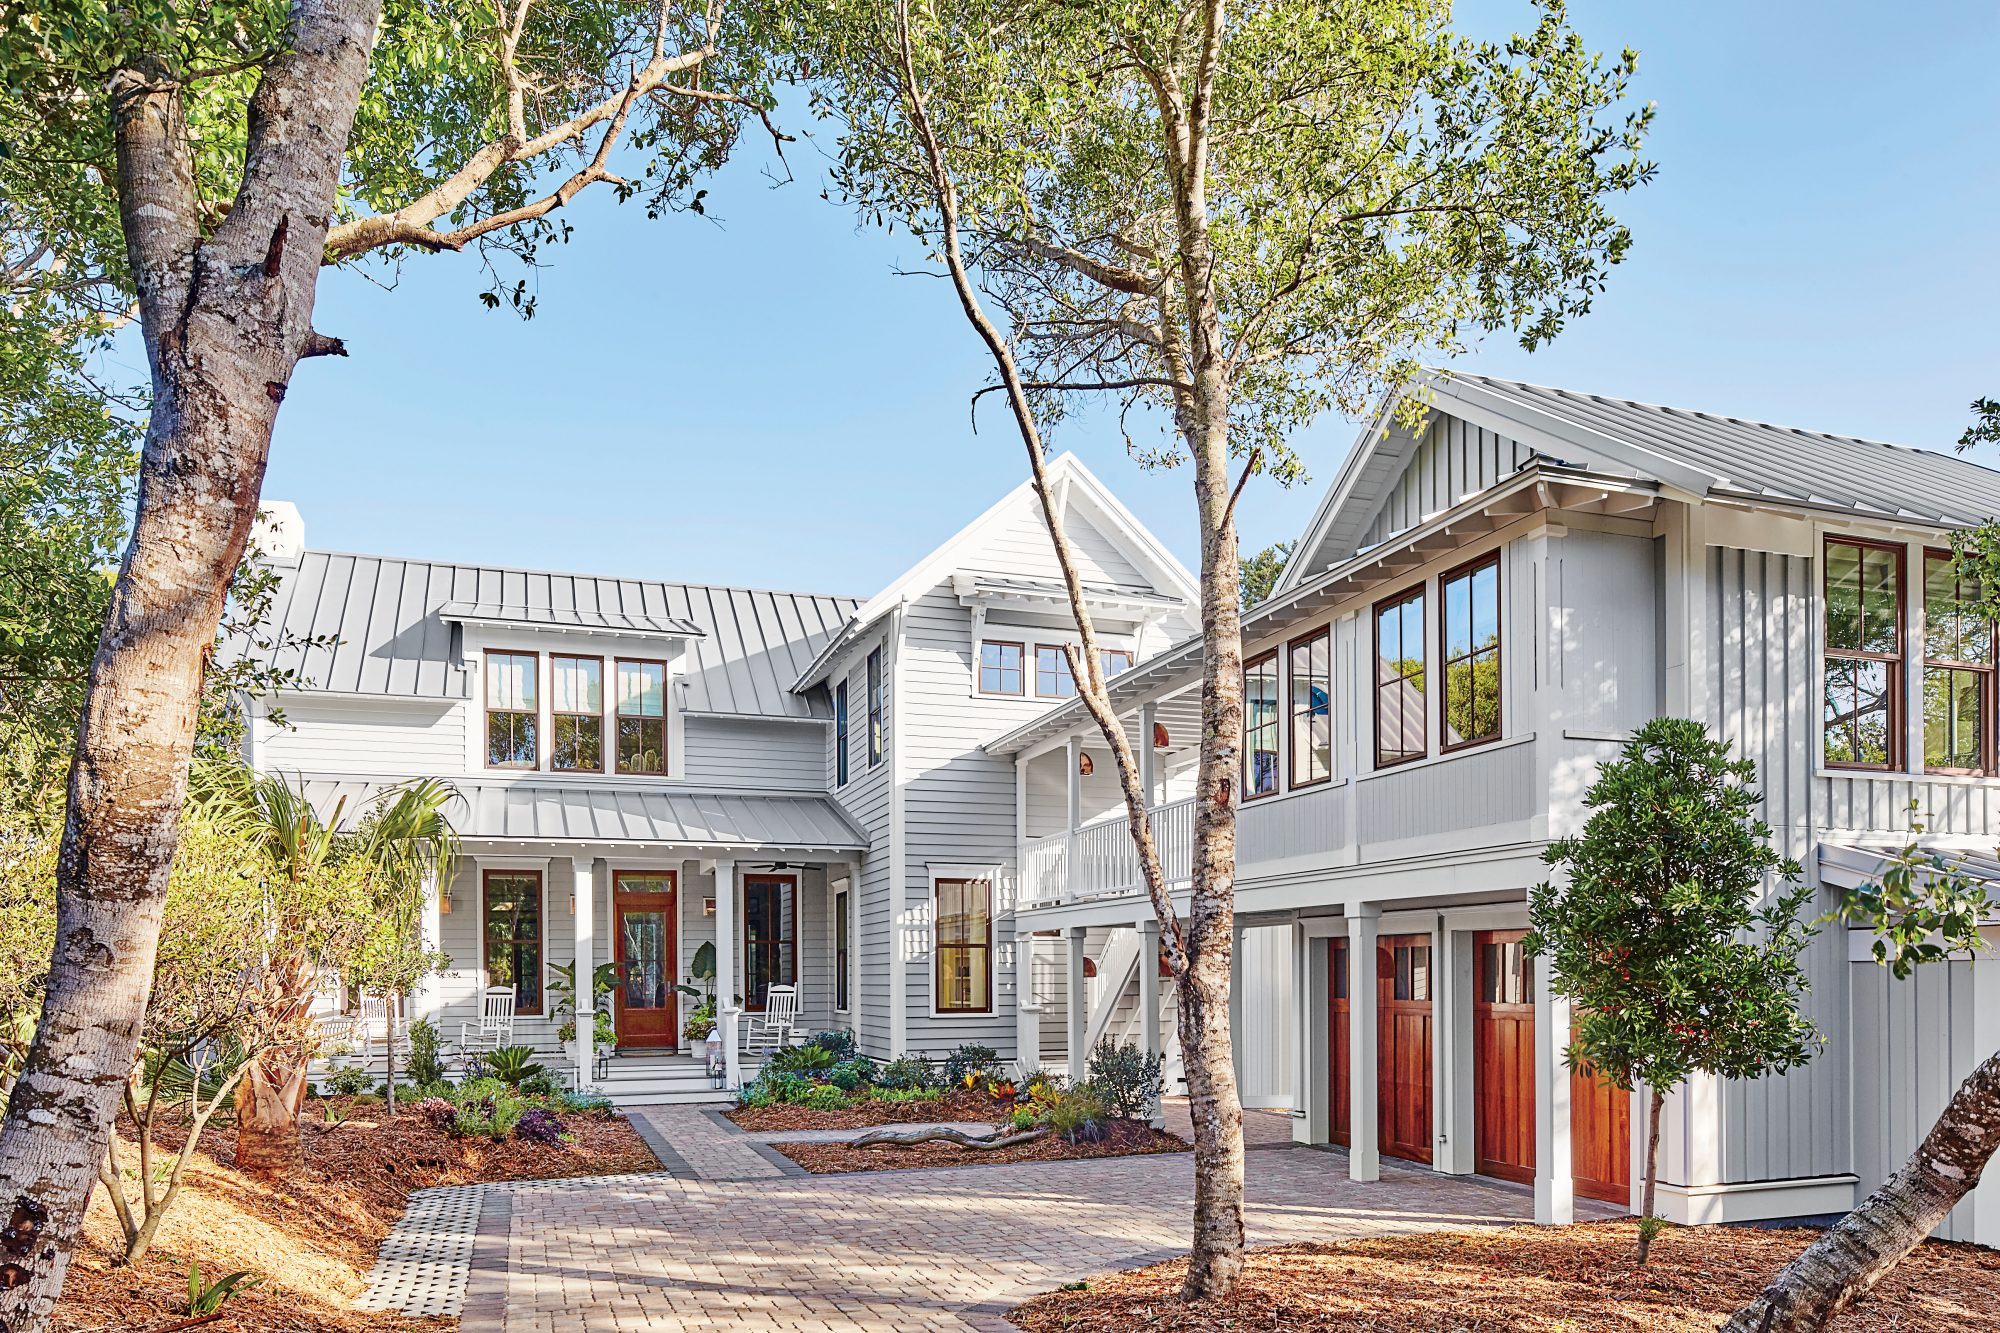 Our Dream Beach House Step Inside The 2017 Southern Living Idea House Southern Living